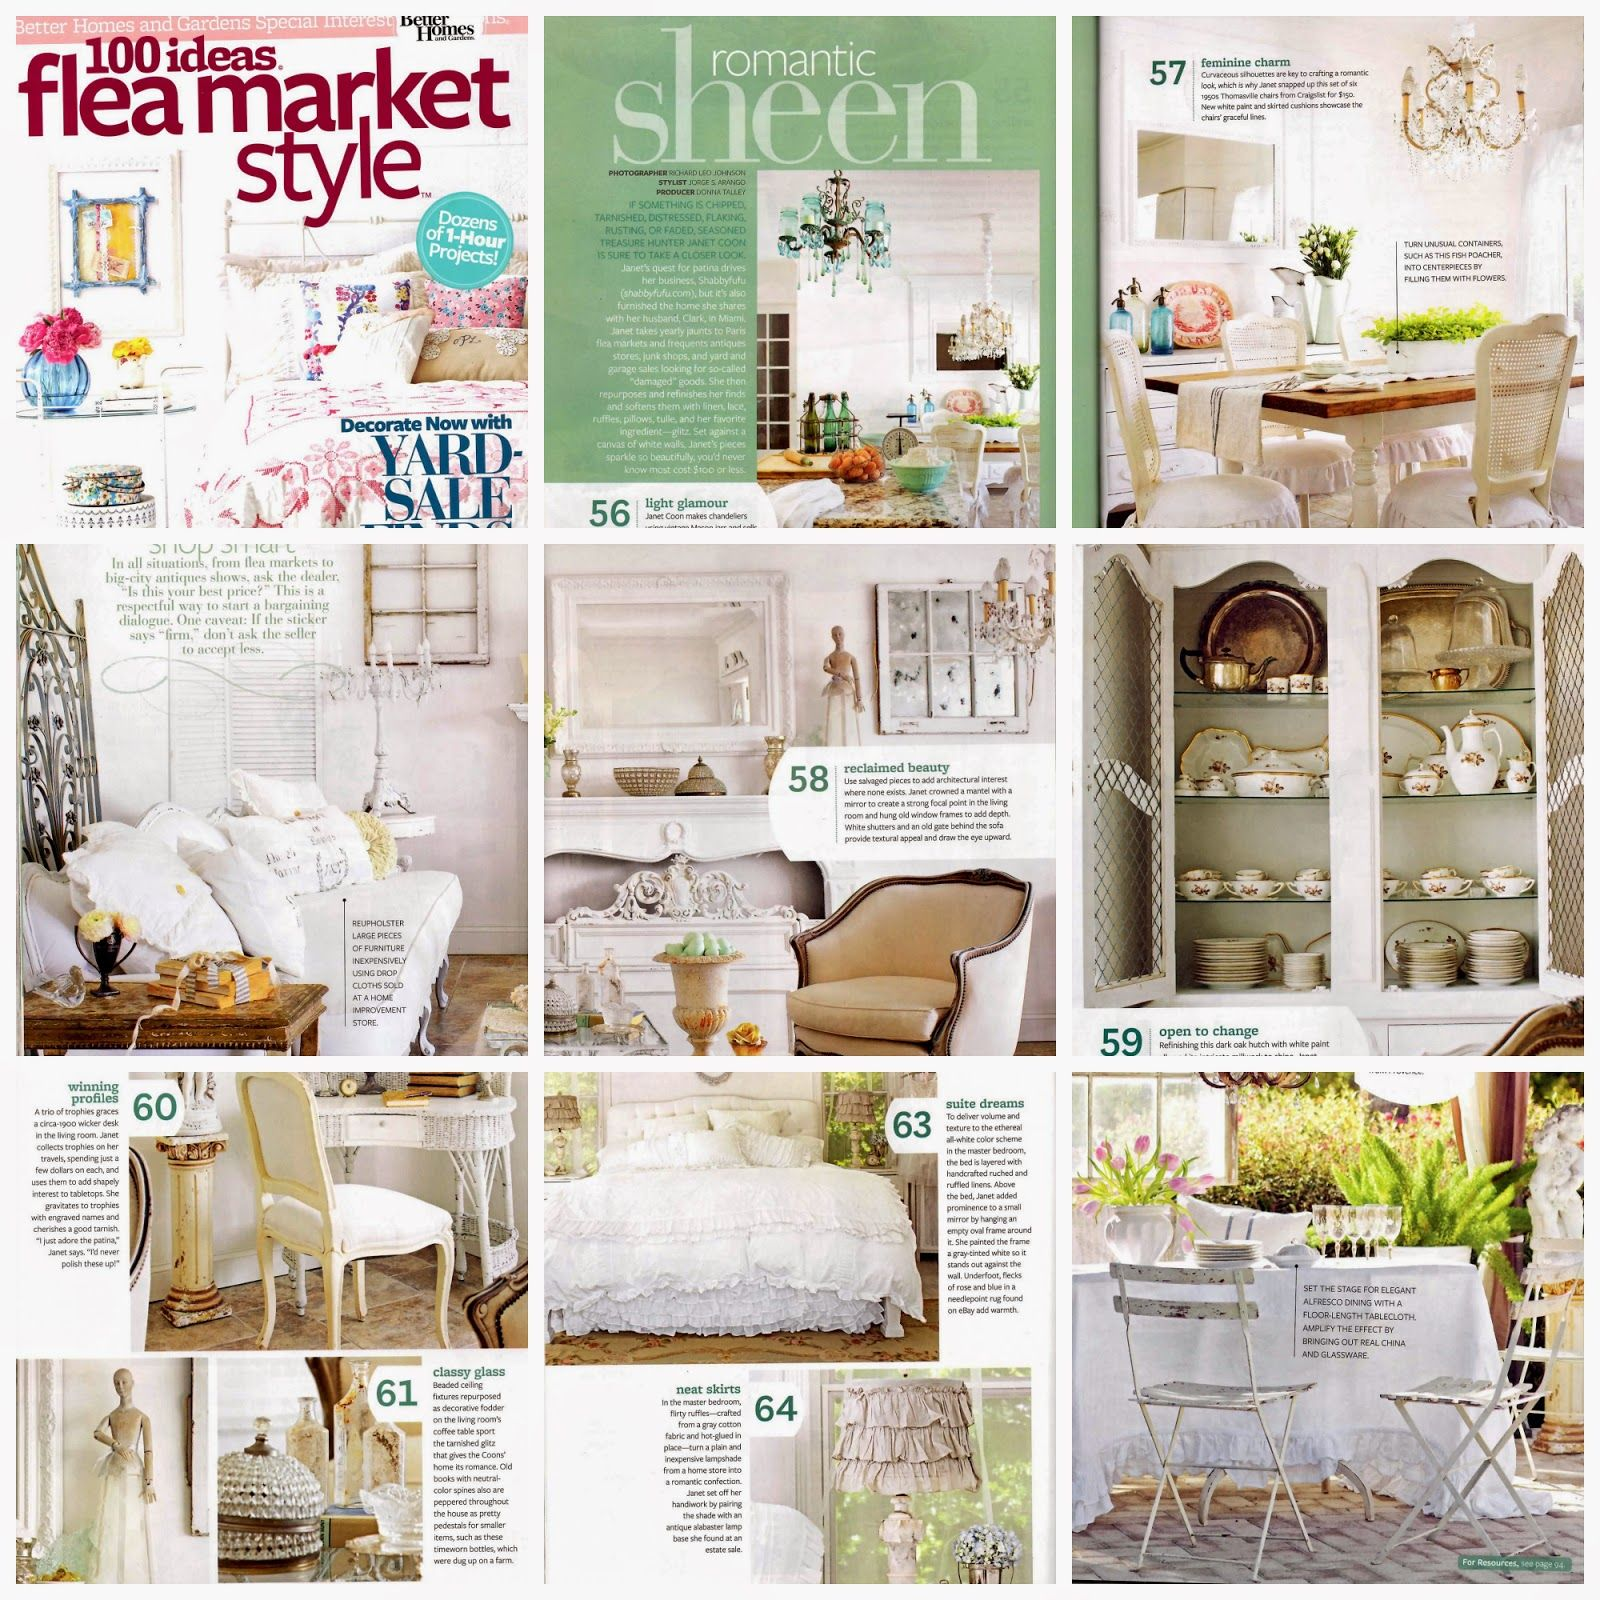 22808416e56c922bee9eef6ebd51d2ab - Better Homes And Gardens Flea Market Style Magazine